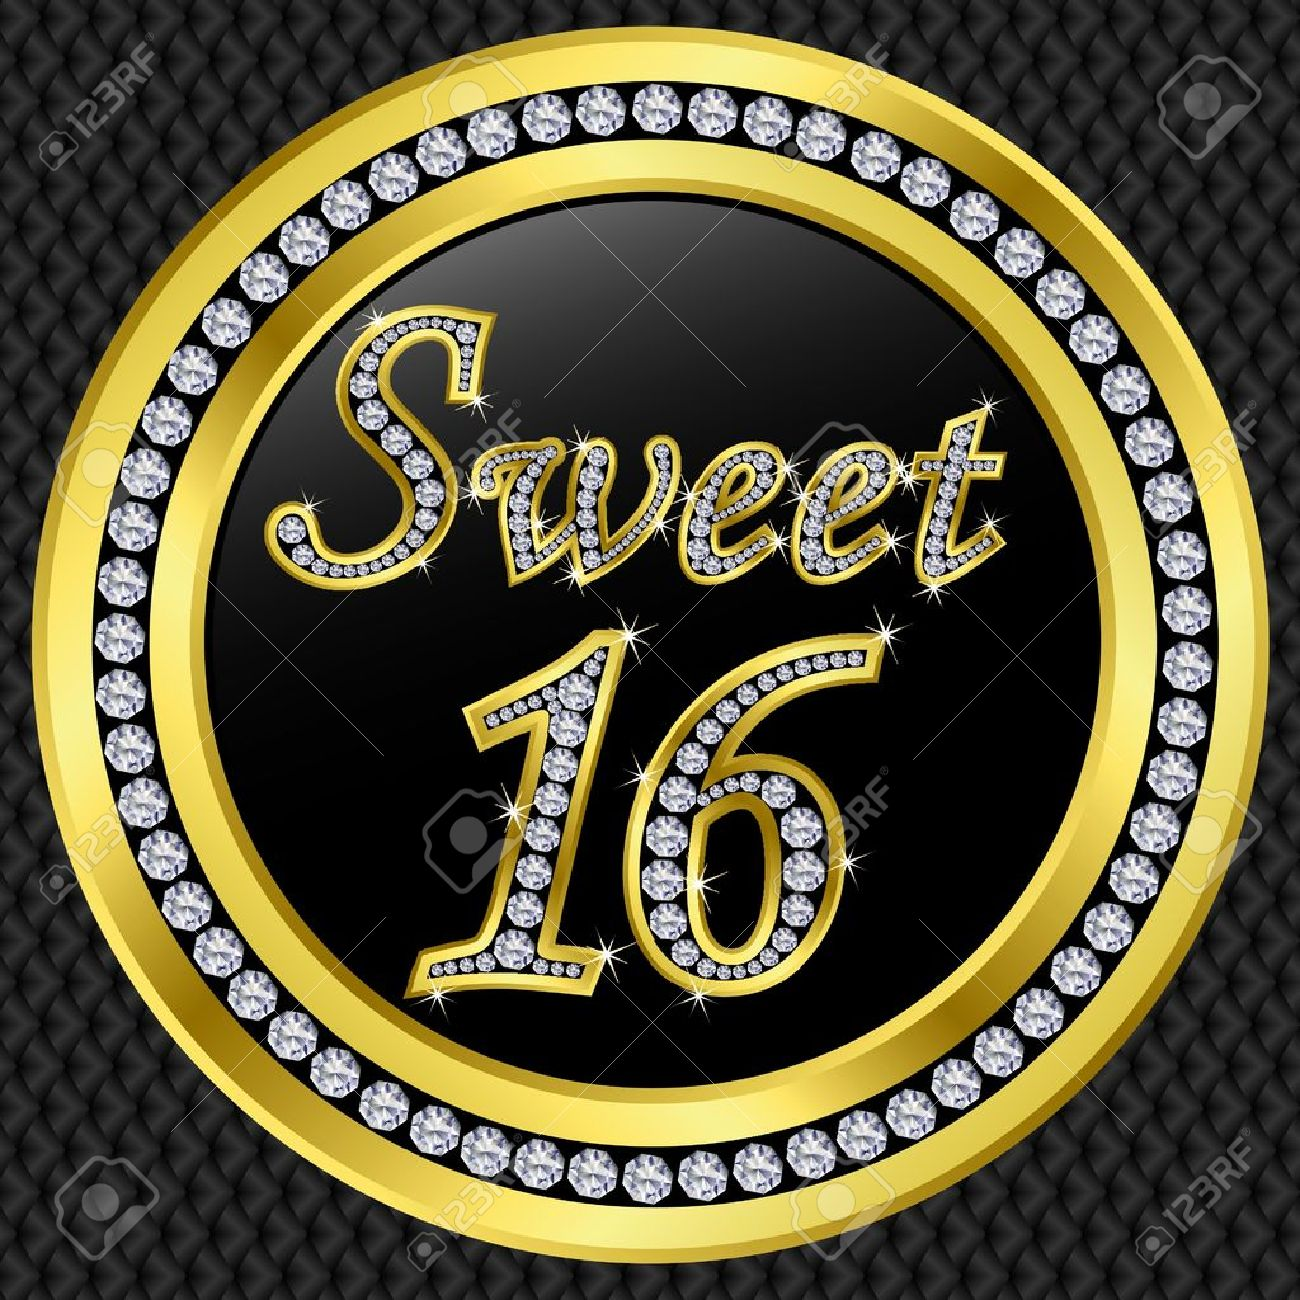 sweet sixteen clipart free clipground sweet 16 clipart pinterist sweet 16 clipart images